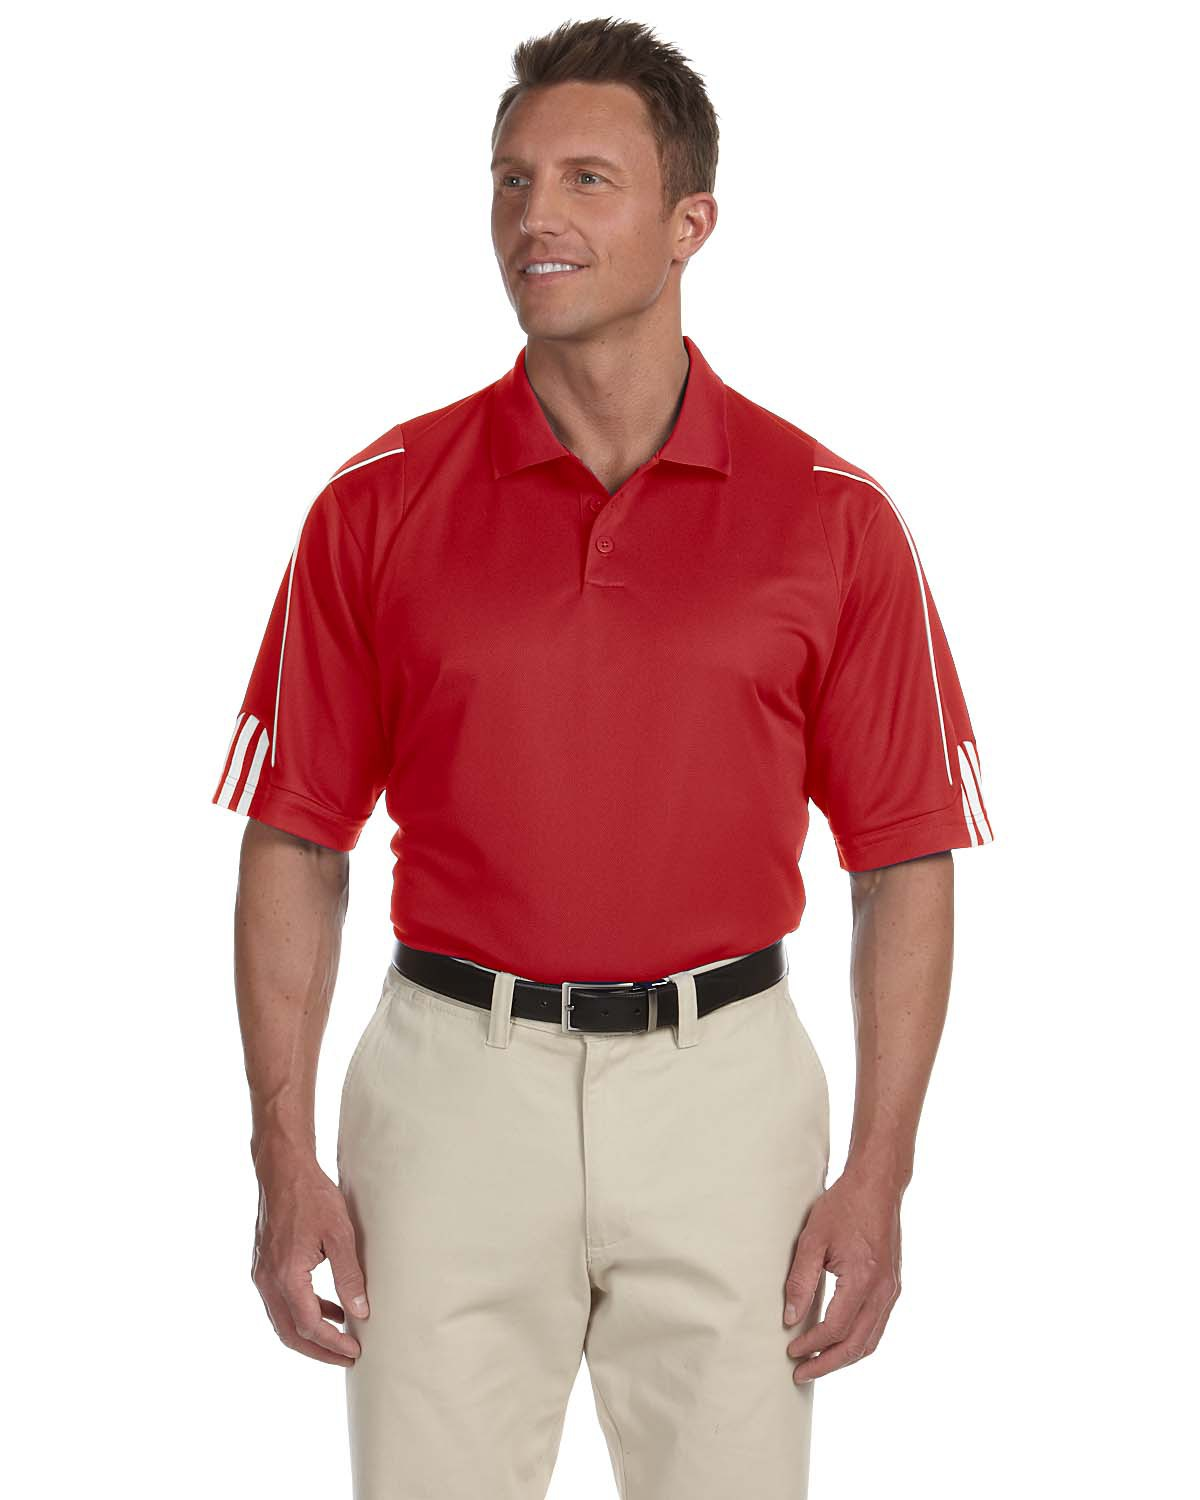 MHAA76-HDS- Mens Adidas Golf Mens ClimaLite® 3 Stripes Cuff Polo